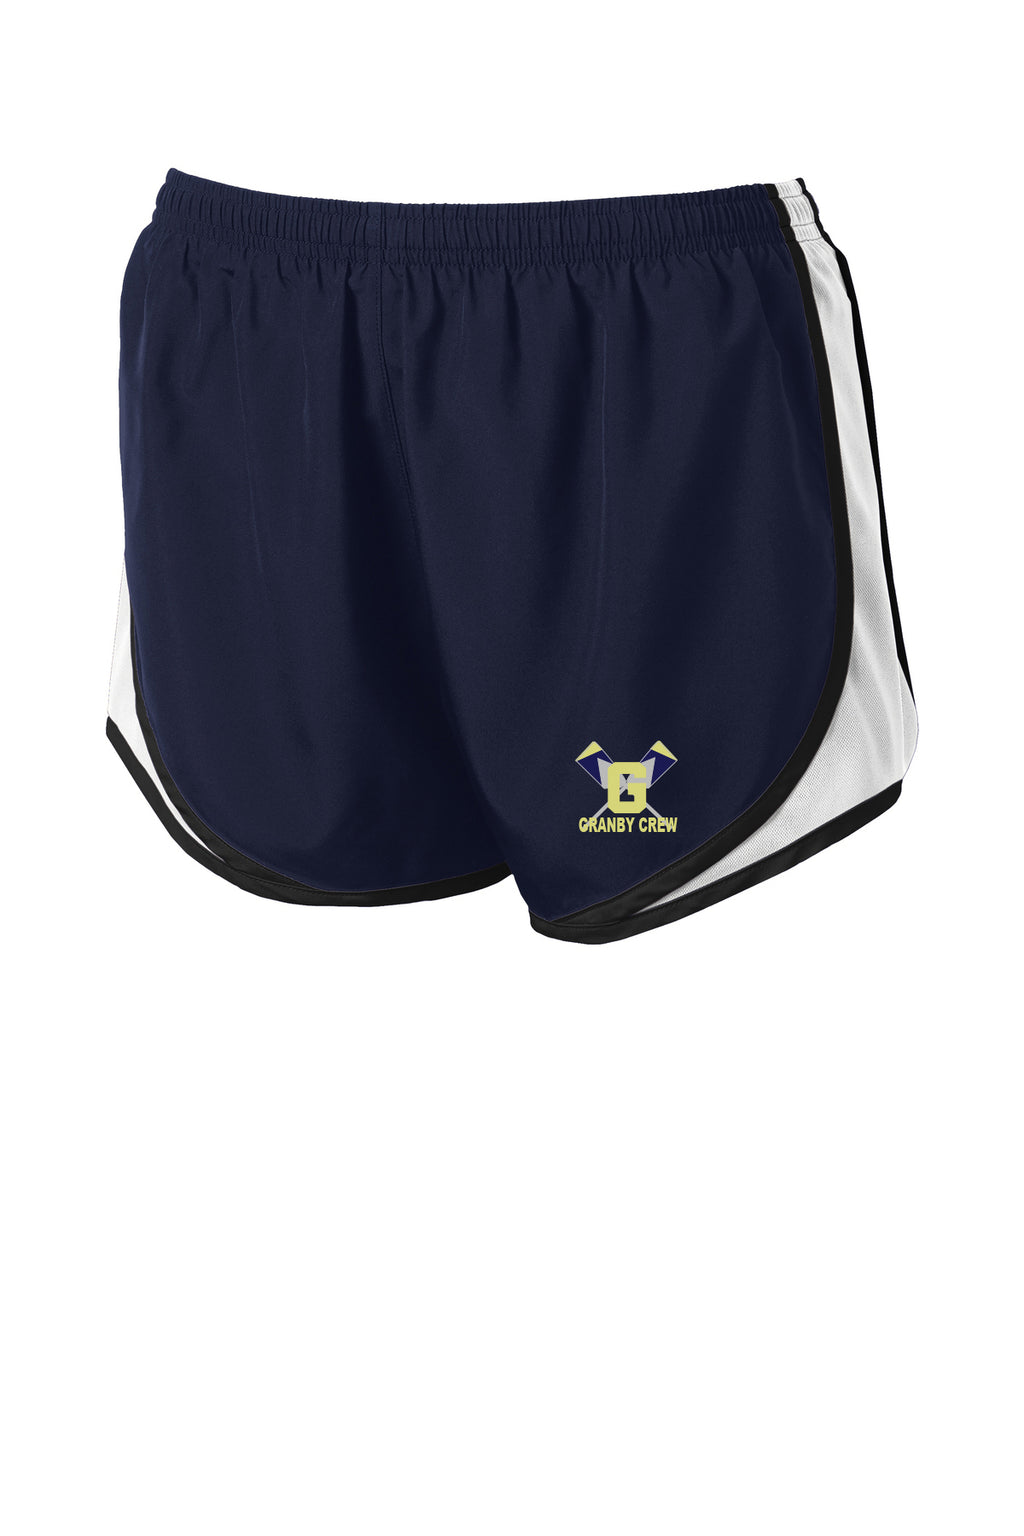 Granby Crew Ladies Running Shorts